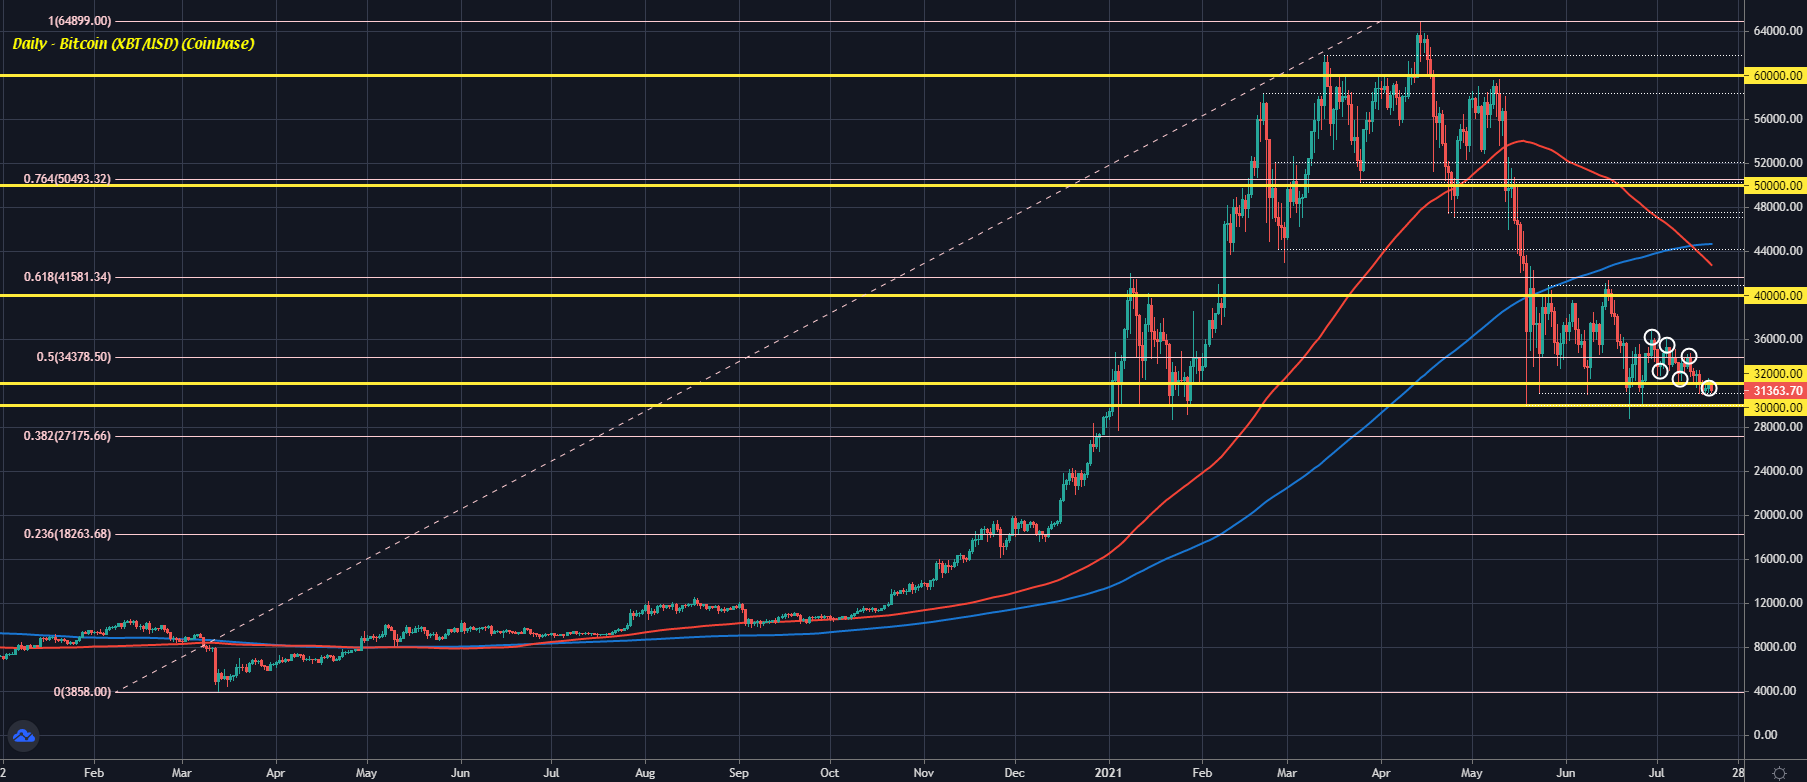 Bitcoin survives the weekend but the pressure is still on